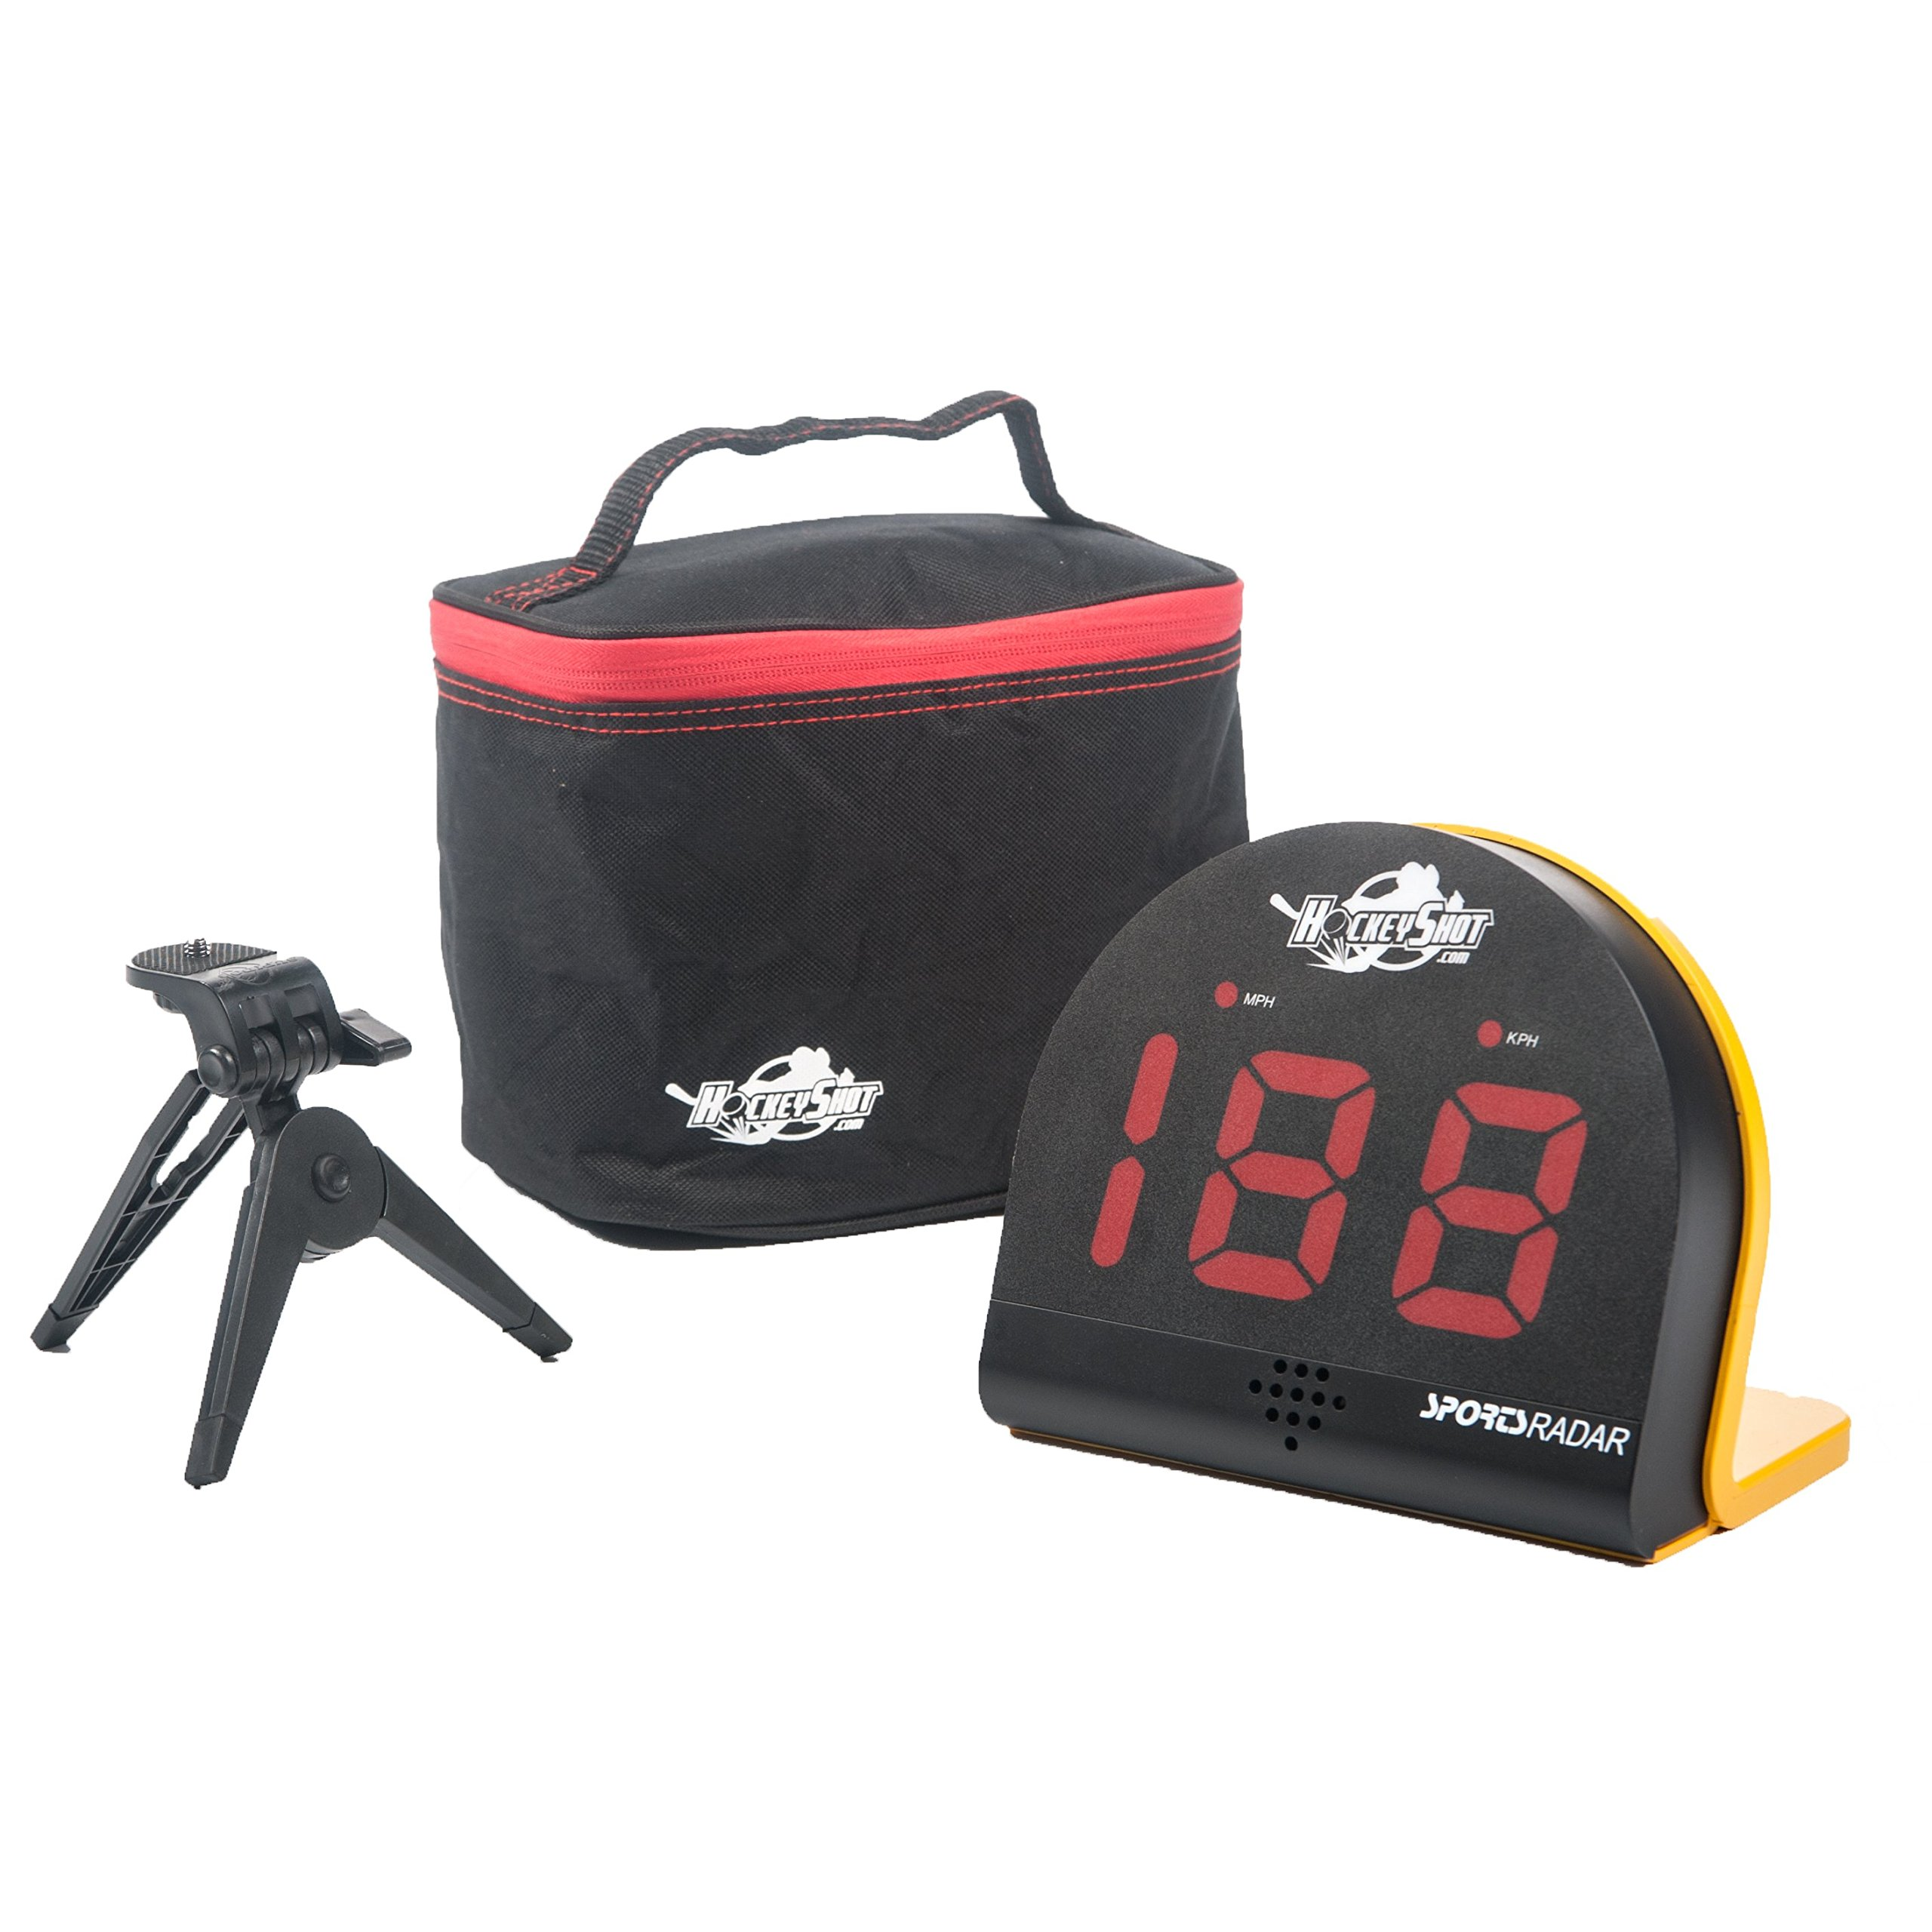 HOCKEYSHOT Puck and Ball Speed Radar Hockey Training Aids Large red 2 1/8'' 3 digit LED display Speed range 3 mph to 150 mph.